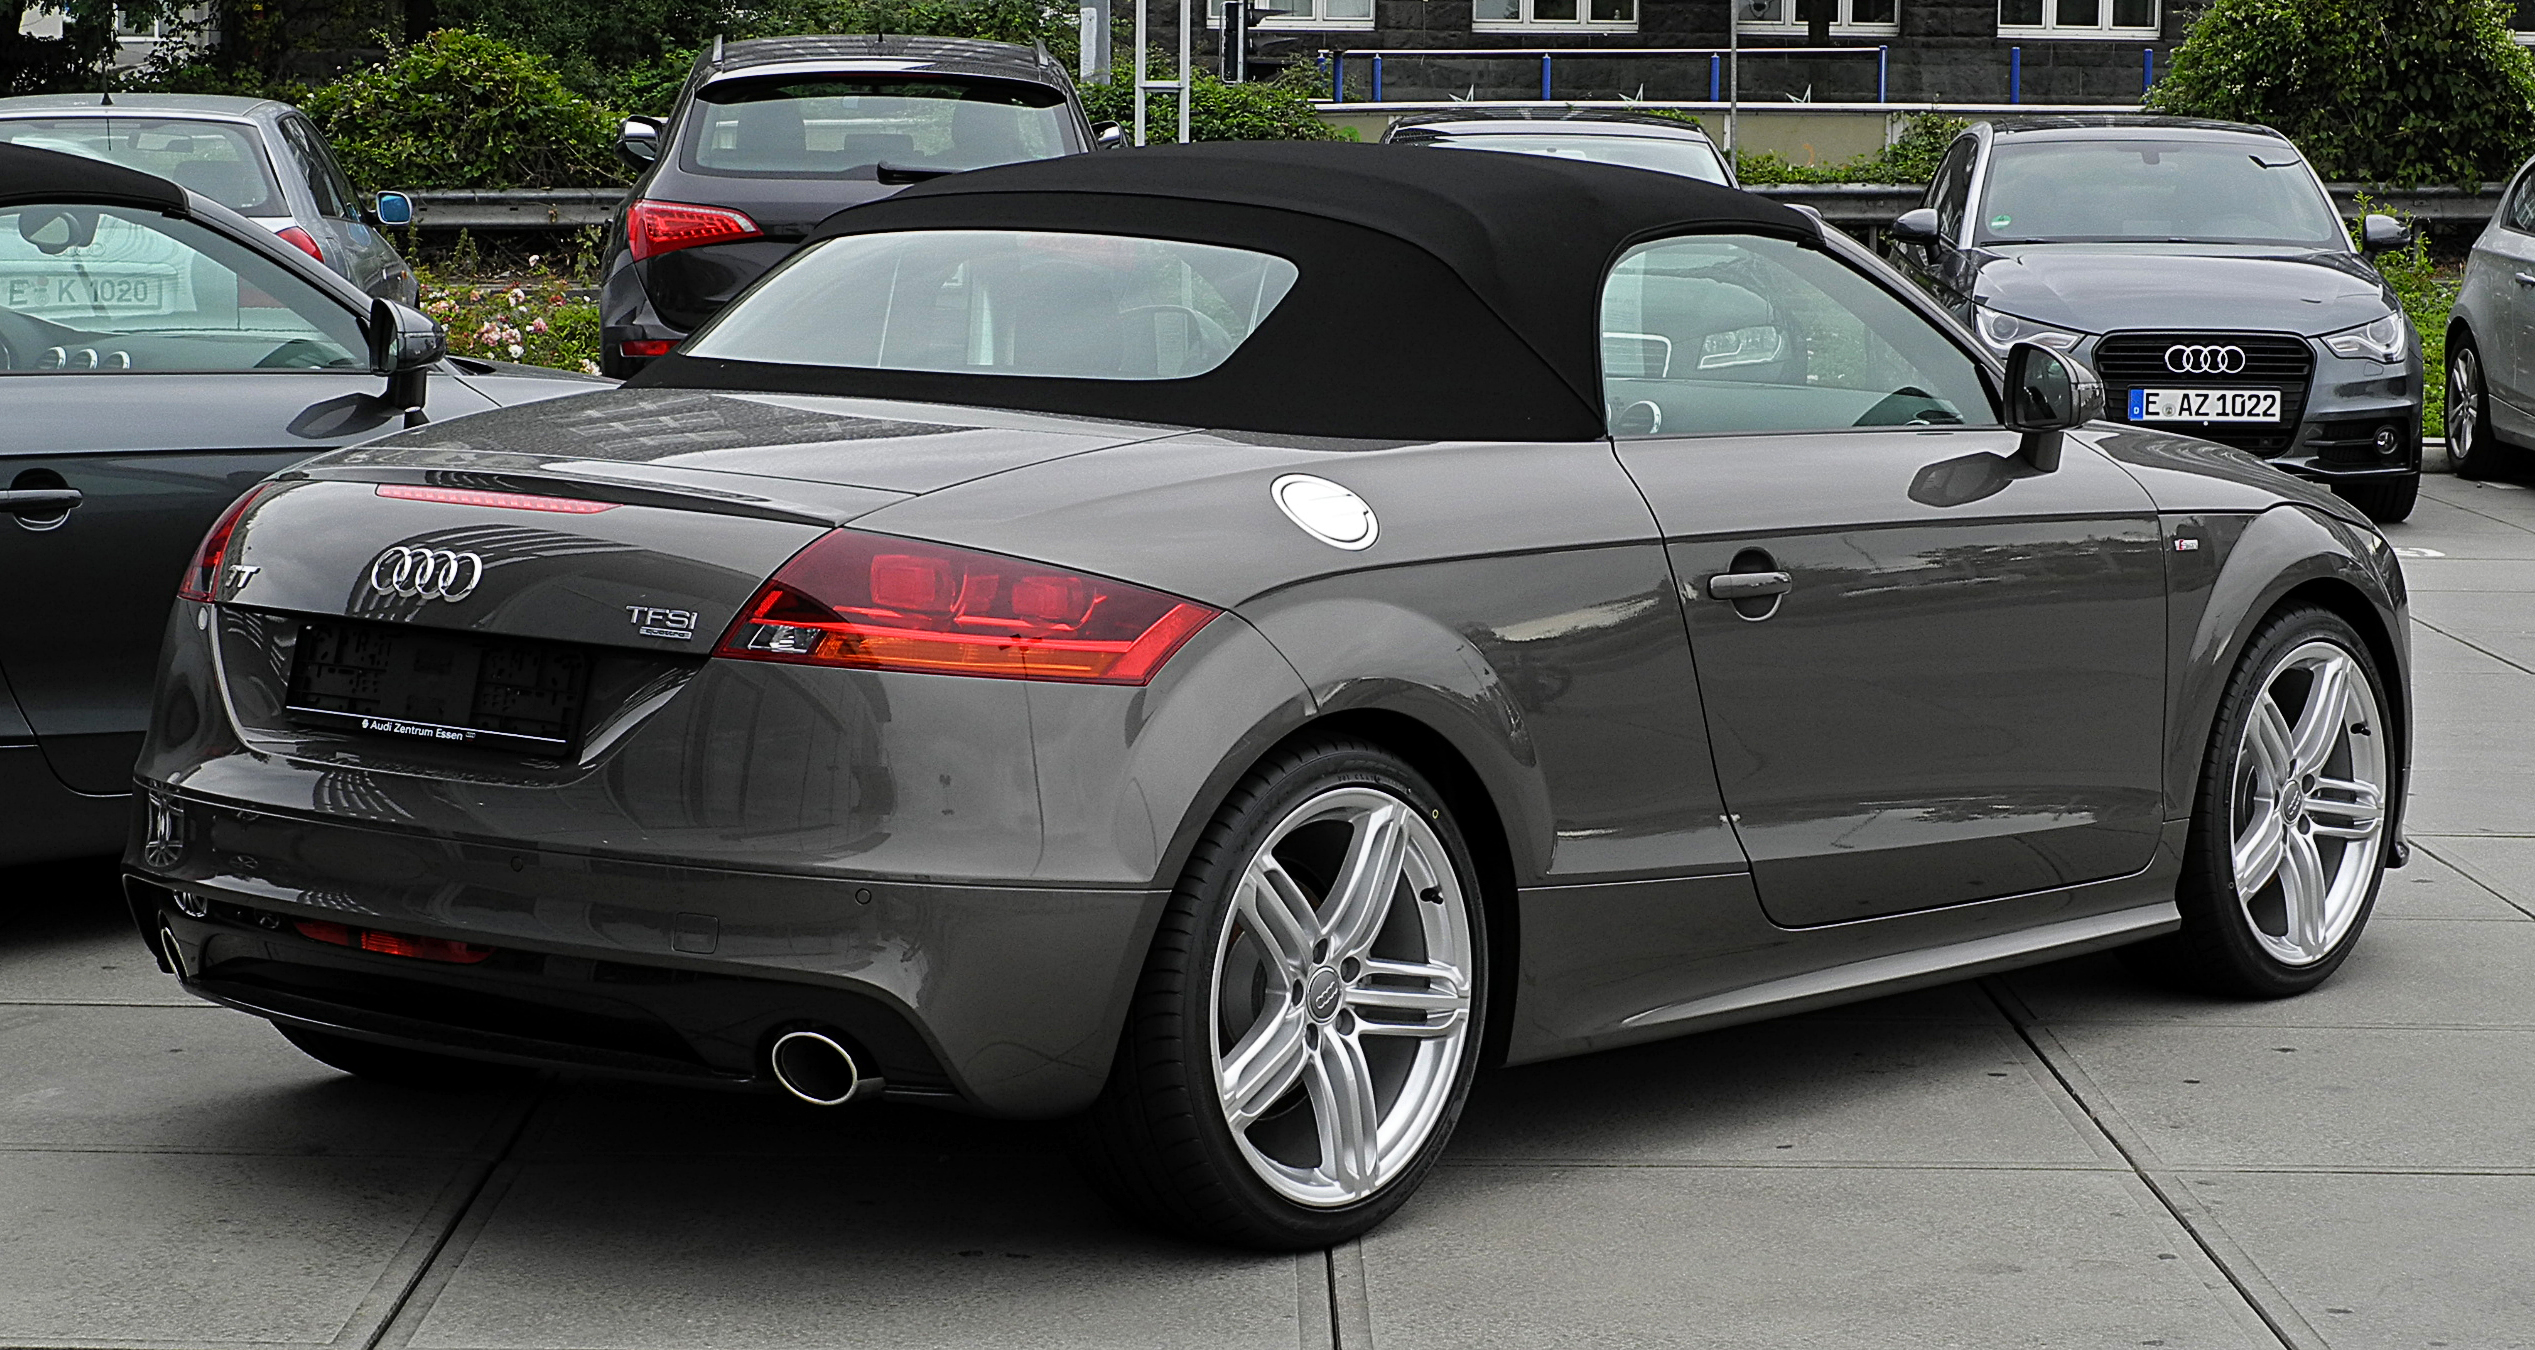 plik audi tt roadster 2 0 tfsi quattro s line 8j facelift heckansicht 3 juli 2011 essen. Black Bedroom Furniture Sets. Home Design Ideas